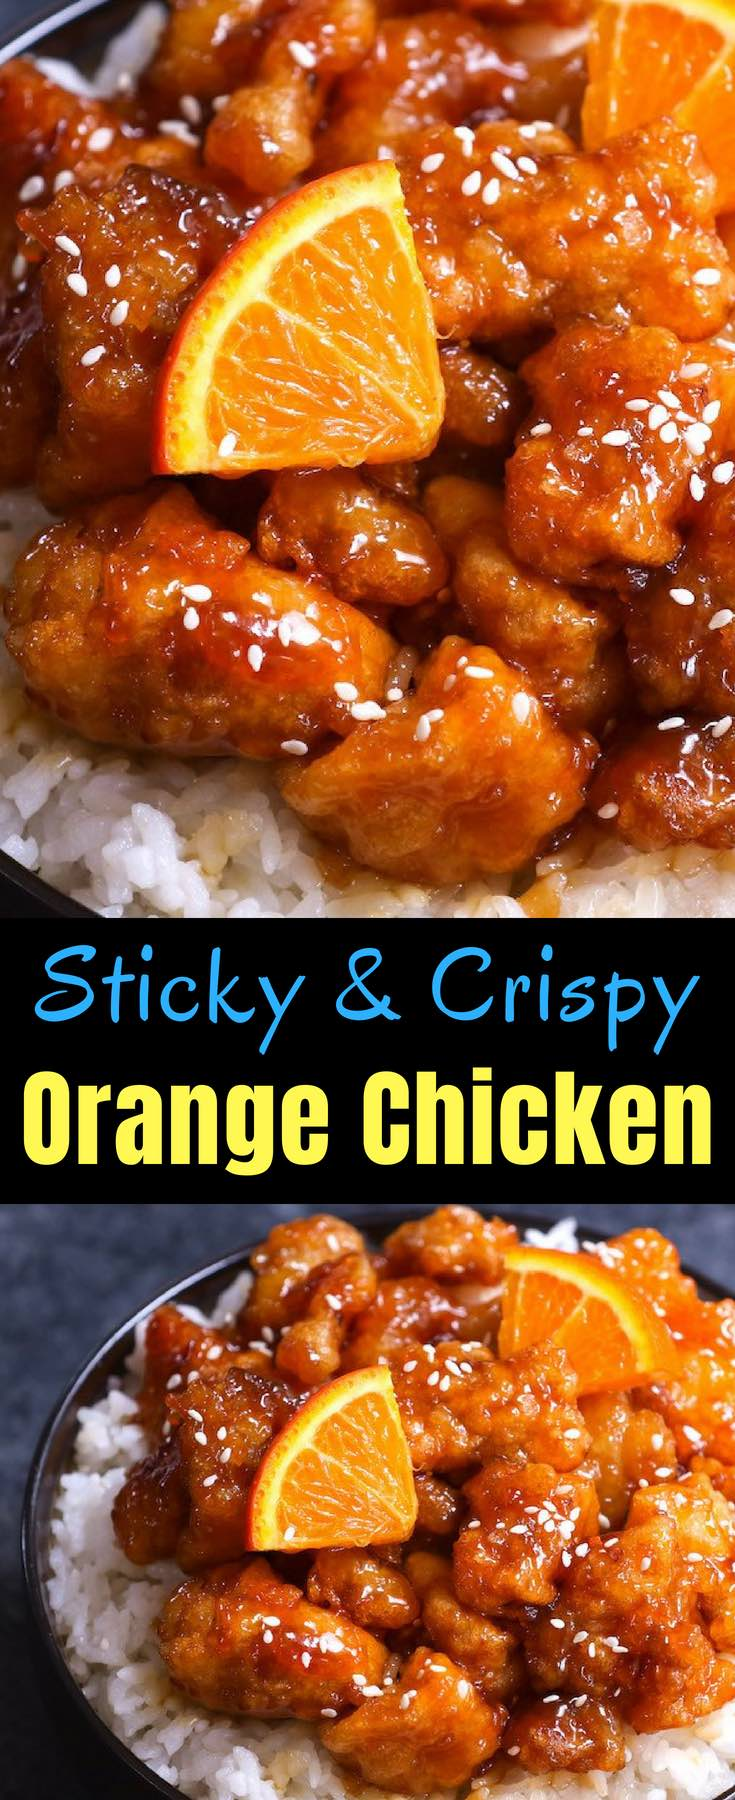 Orange Chicken Recipe Panda Express Copycat Tipbuzz